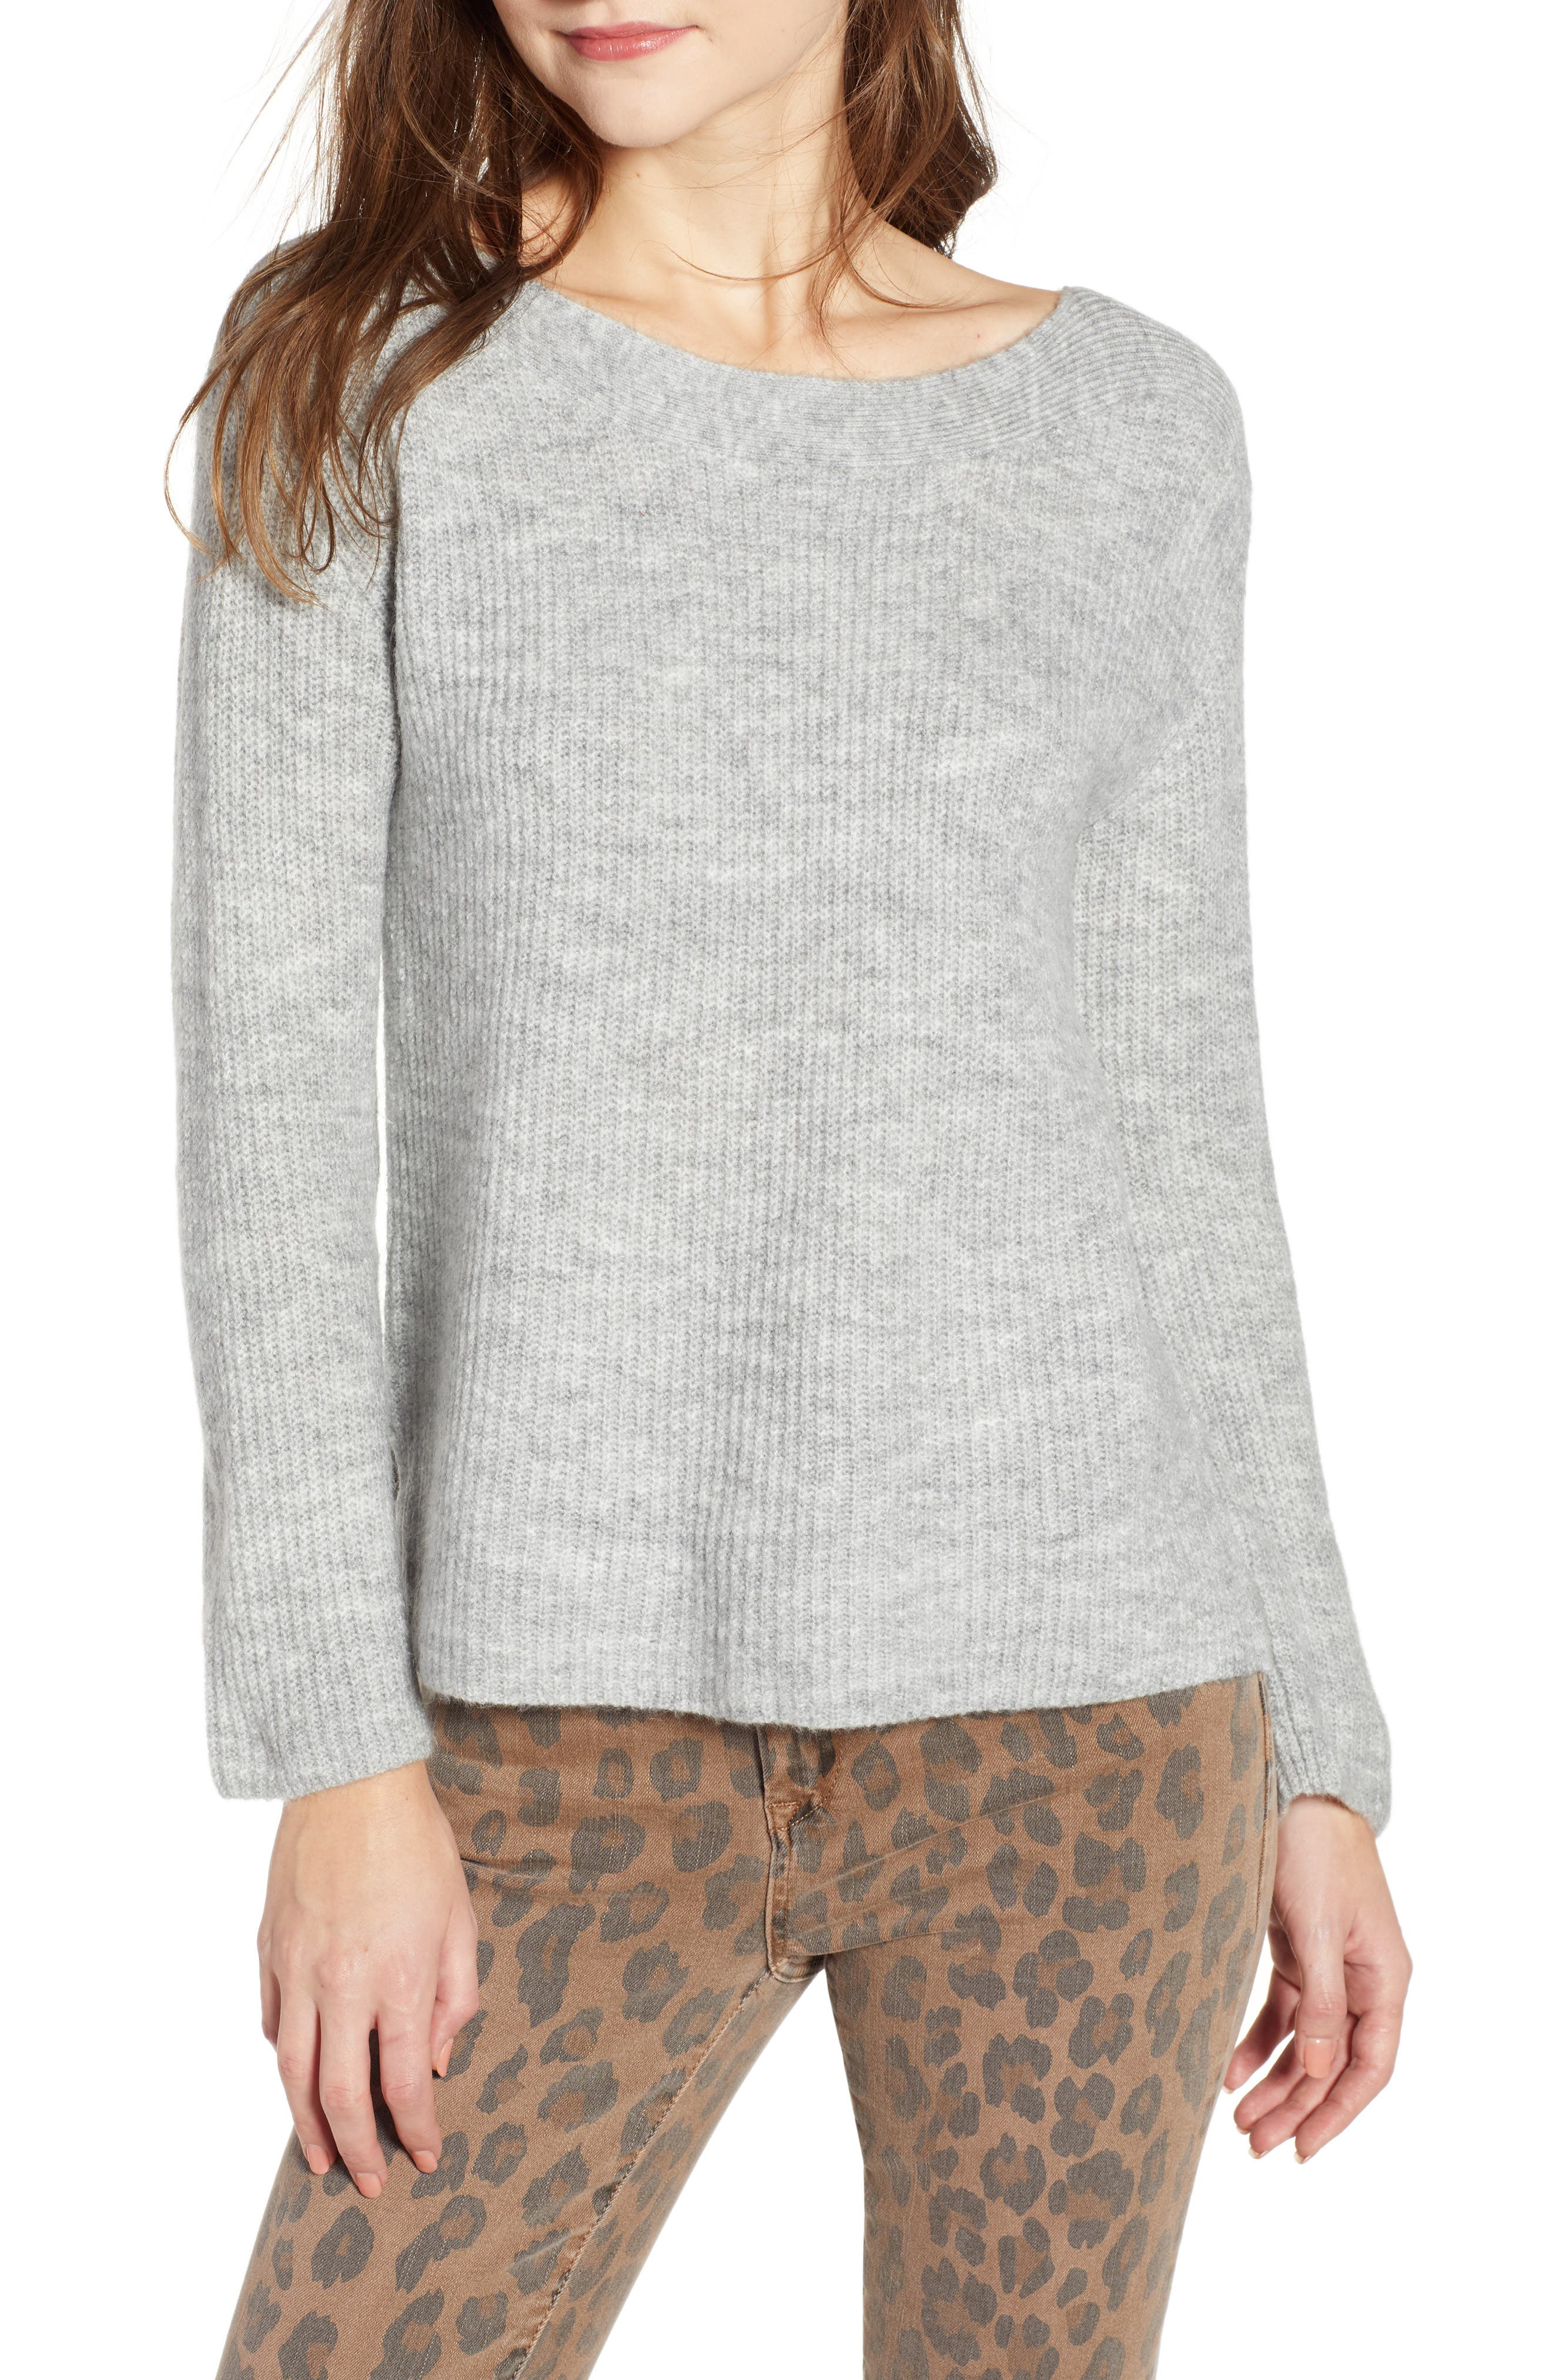 Cozy Femme Pullover Sweater,                             Main thumbnail 1, color,                             GREY PEARL HEATHER